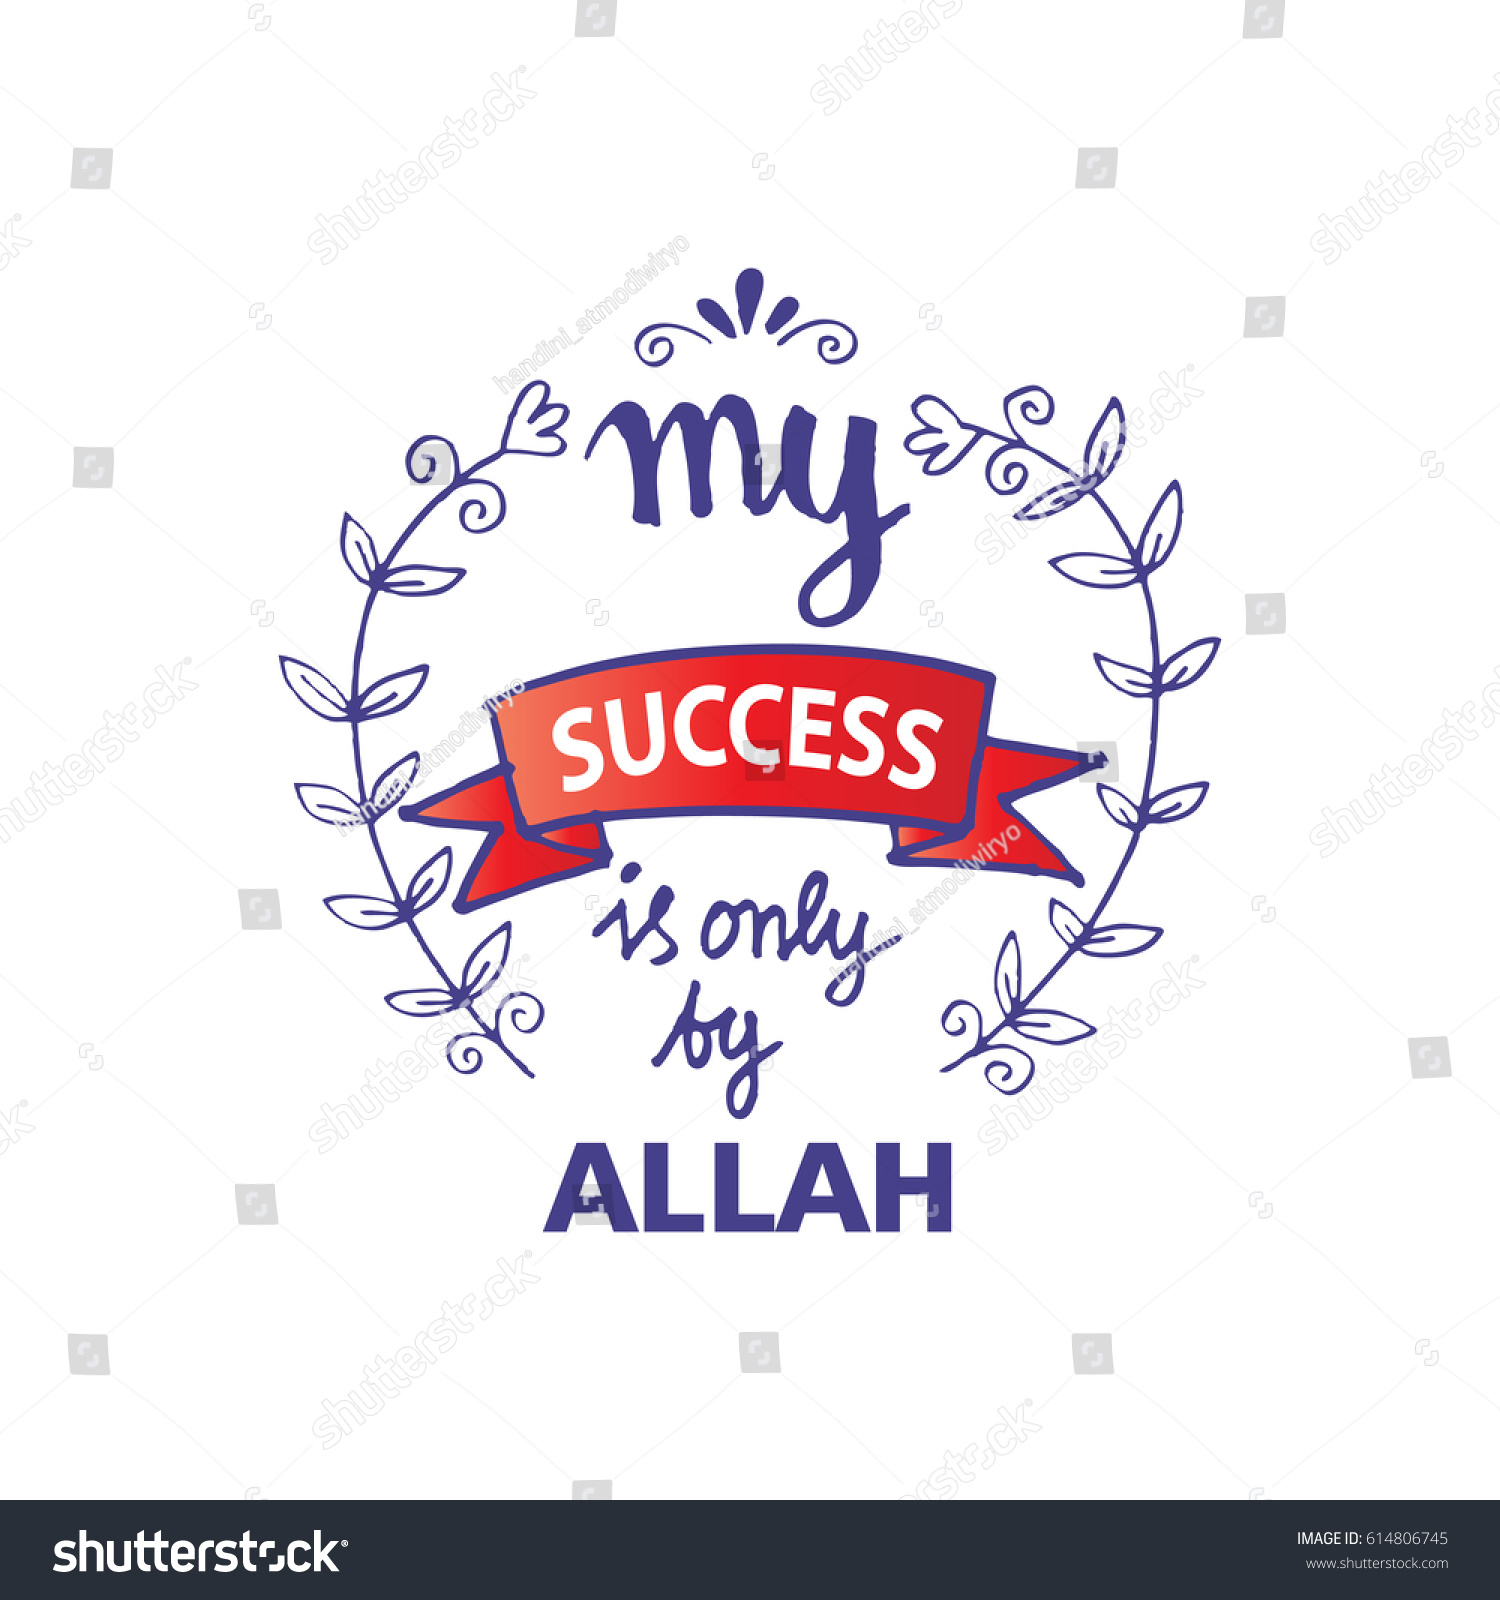 Quotes Quran Islamic Quran Quote My Success Only Stock Vector 614806745